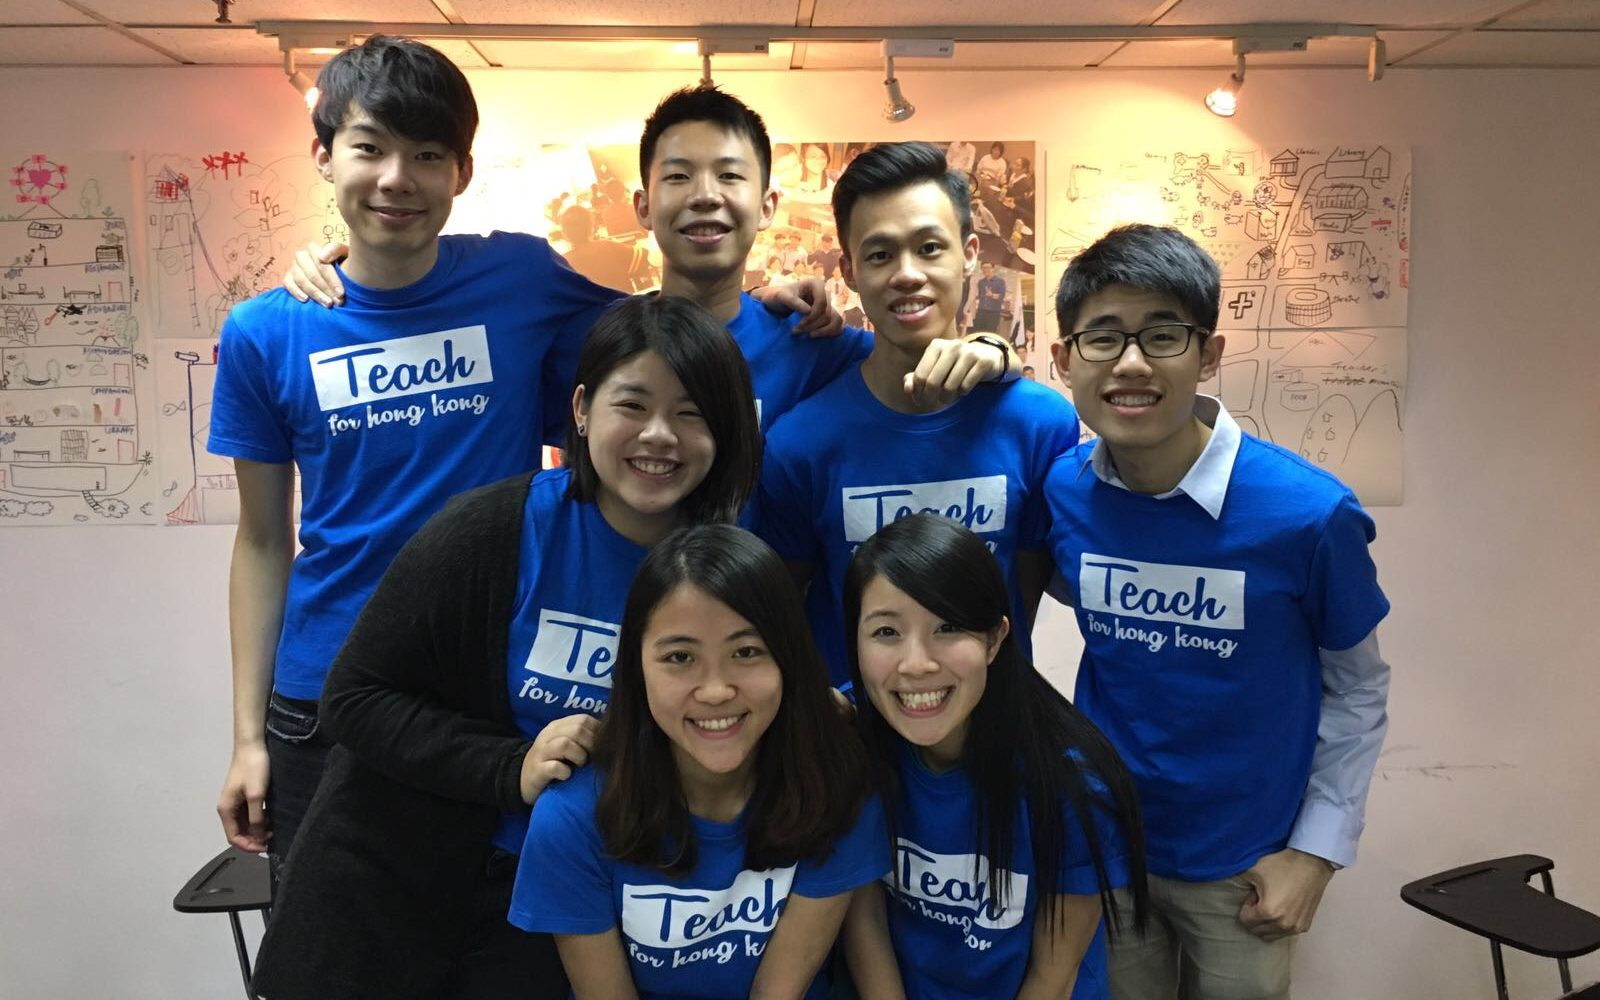 Arnold with his team at Teach for Hong Kong